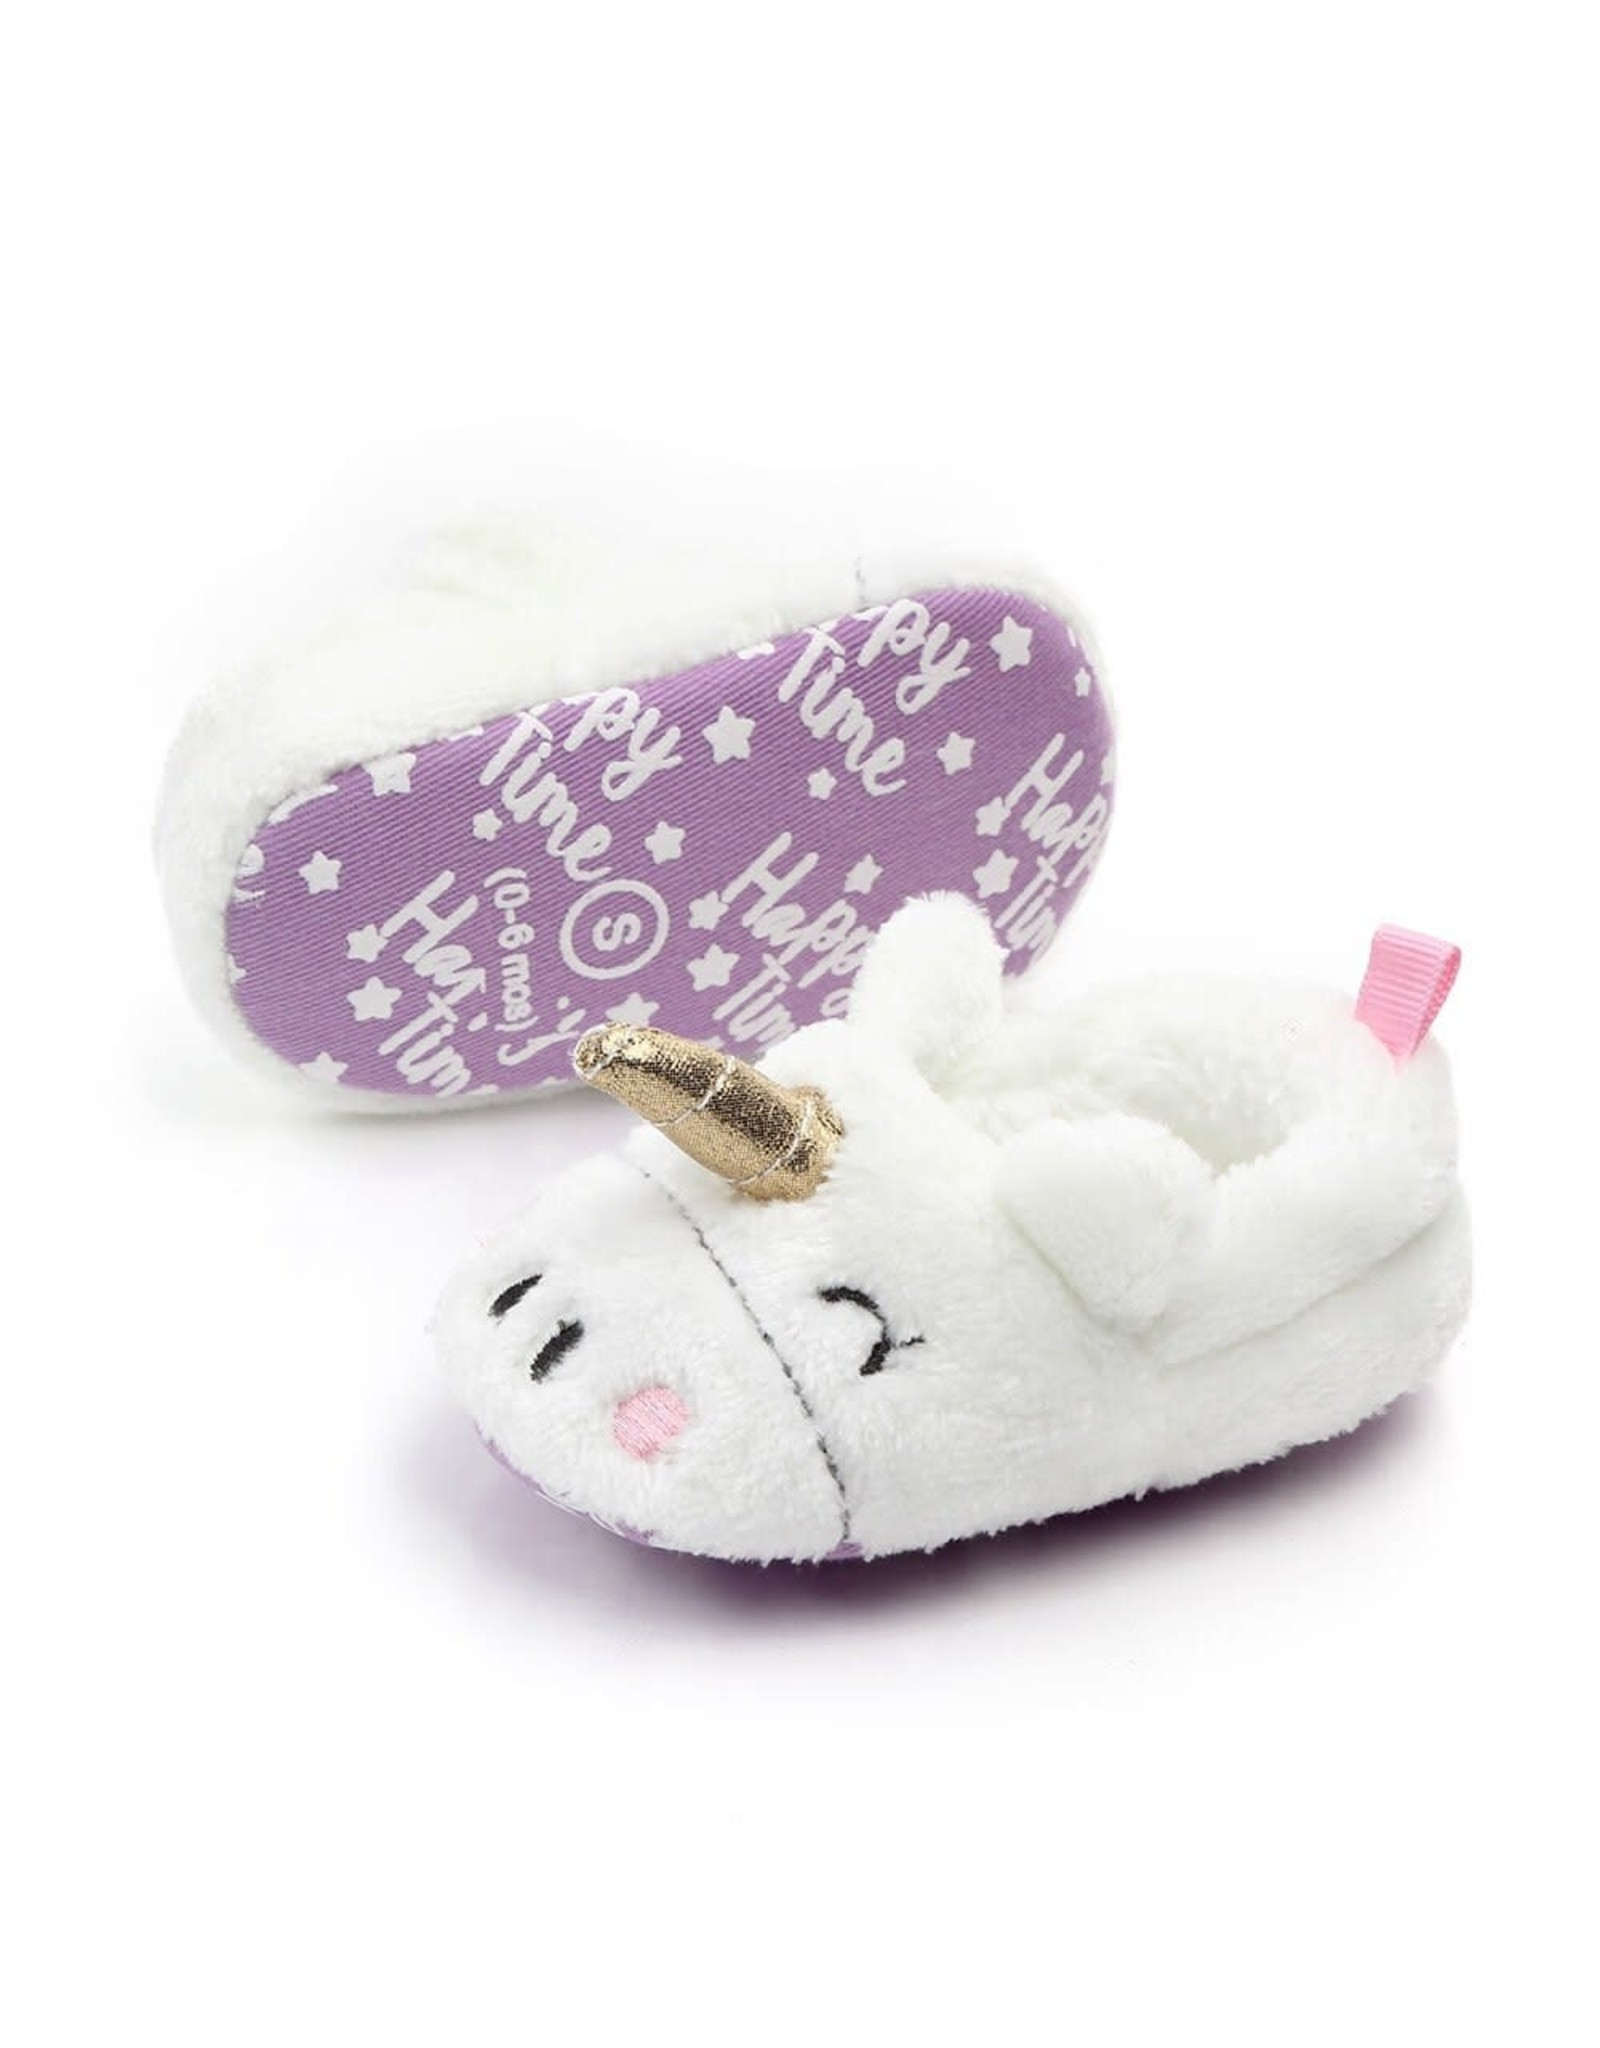 La Licornerie Slippers for Babies (0-6/6-12/12-18)